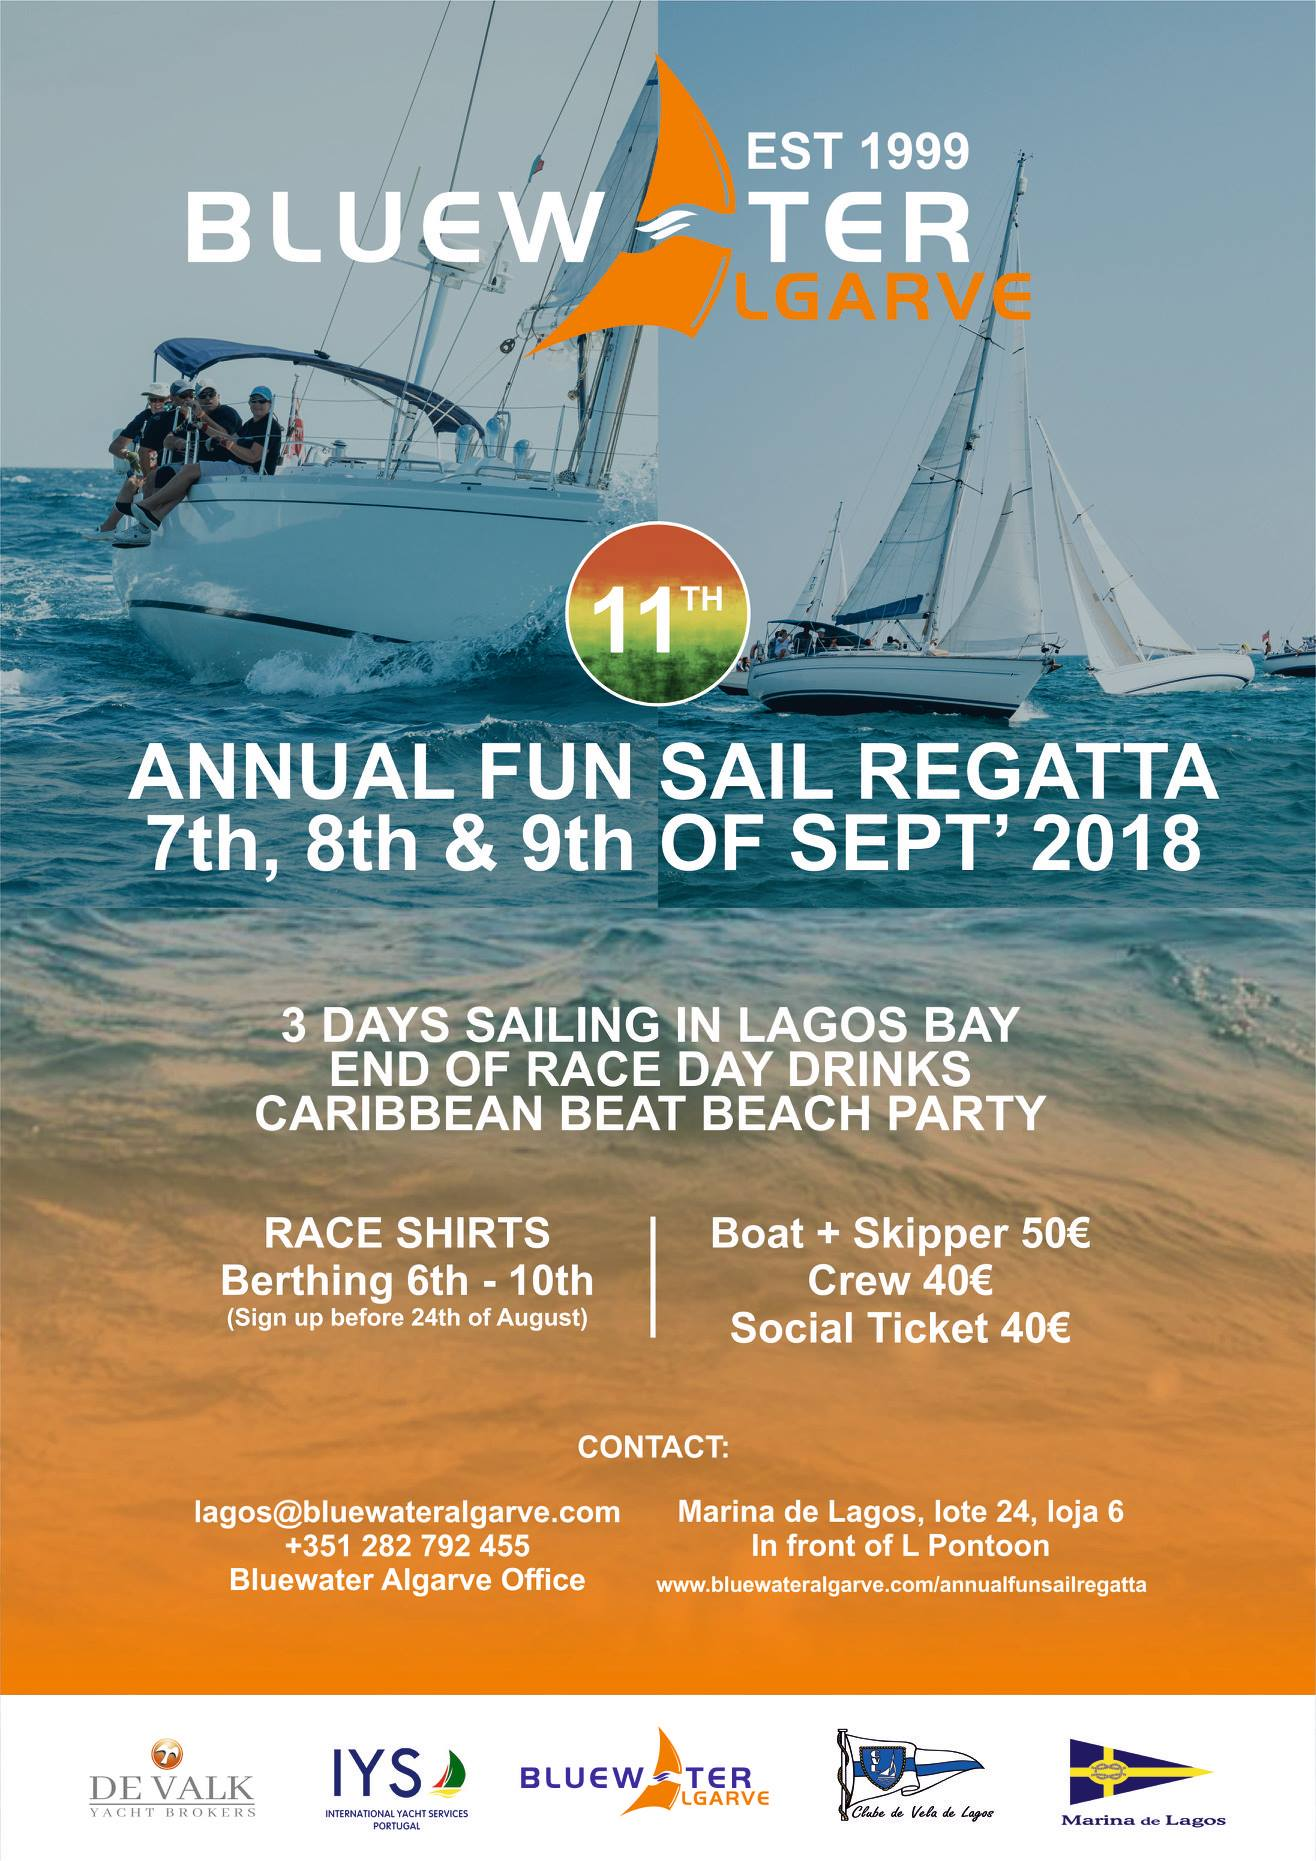 11th Annual Fun Sail Regatta